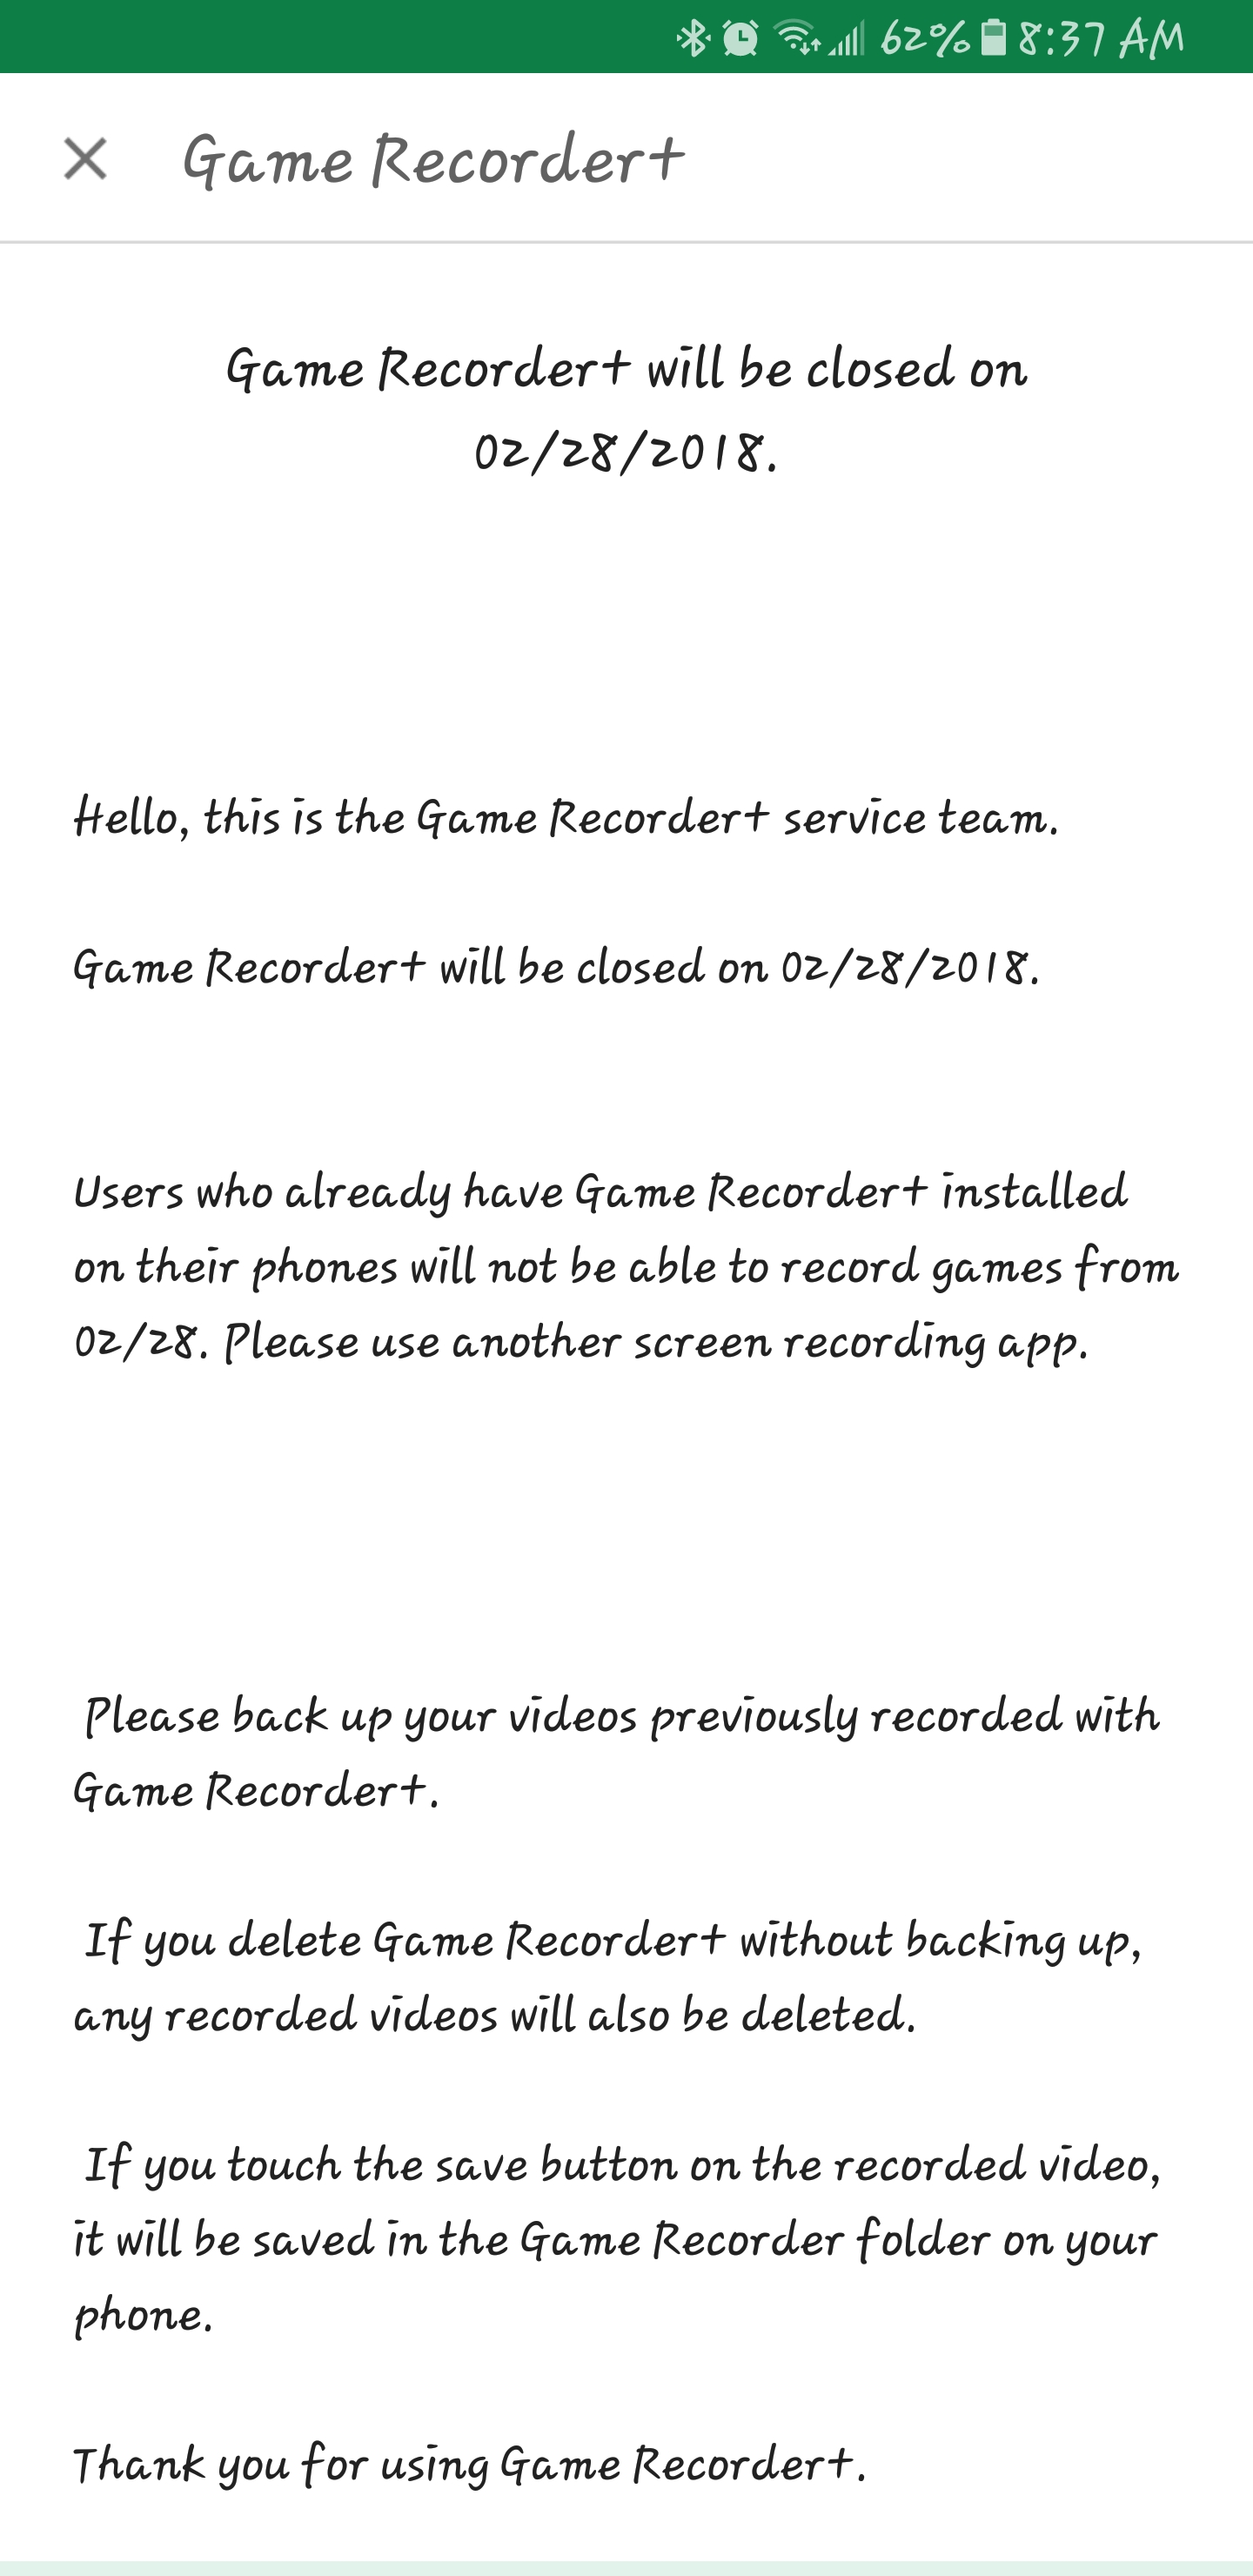 Samsung to send Game Recorder+ to the graveyard next month